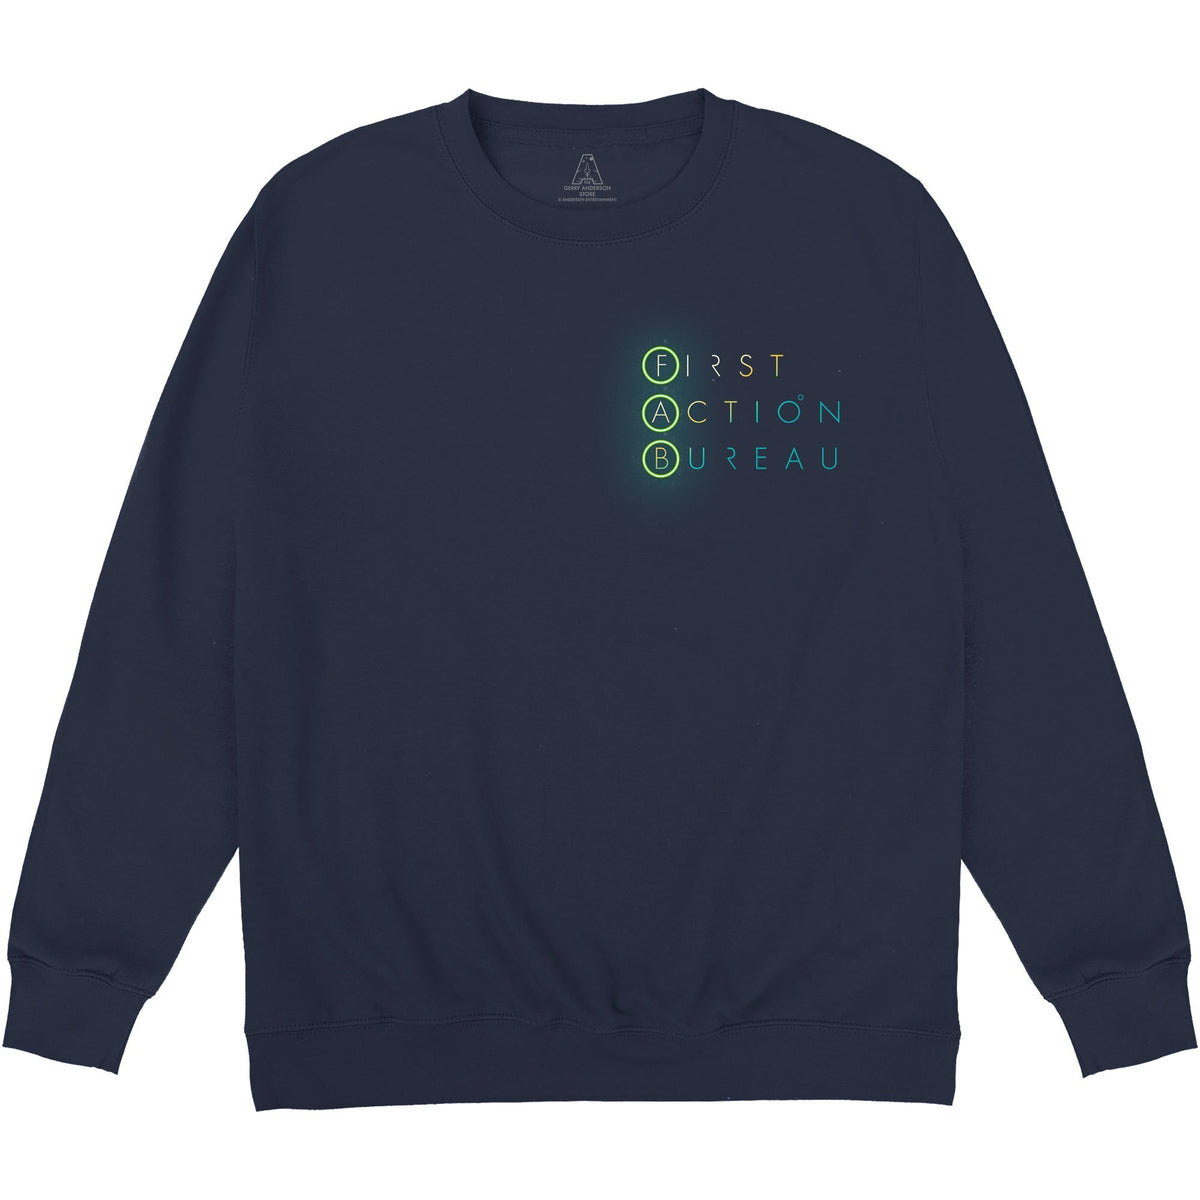 First Action Bureau Small Title Logo Sweatshirt [Official & Exclusive] - The Gerry Anderson Store